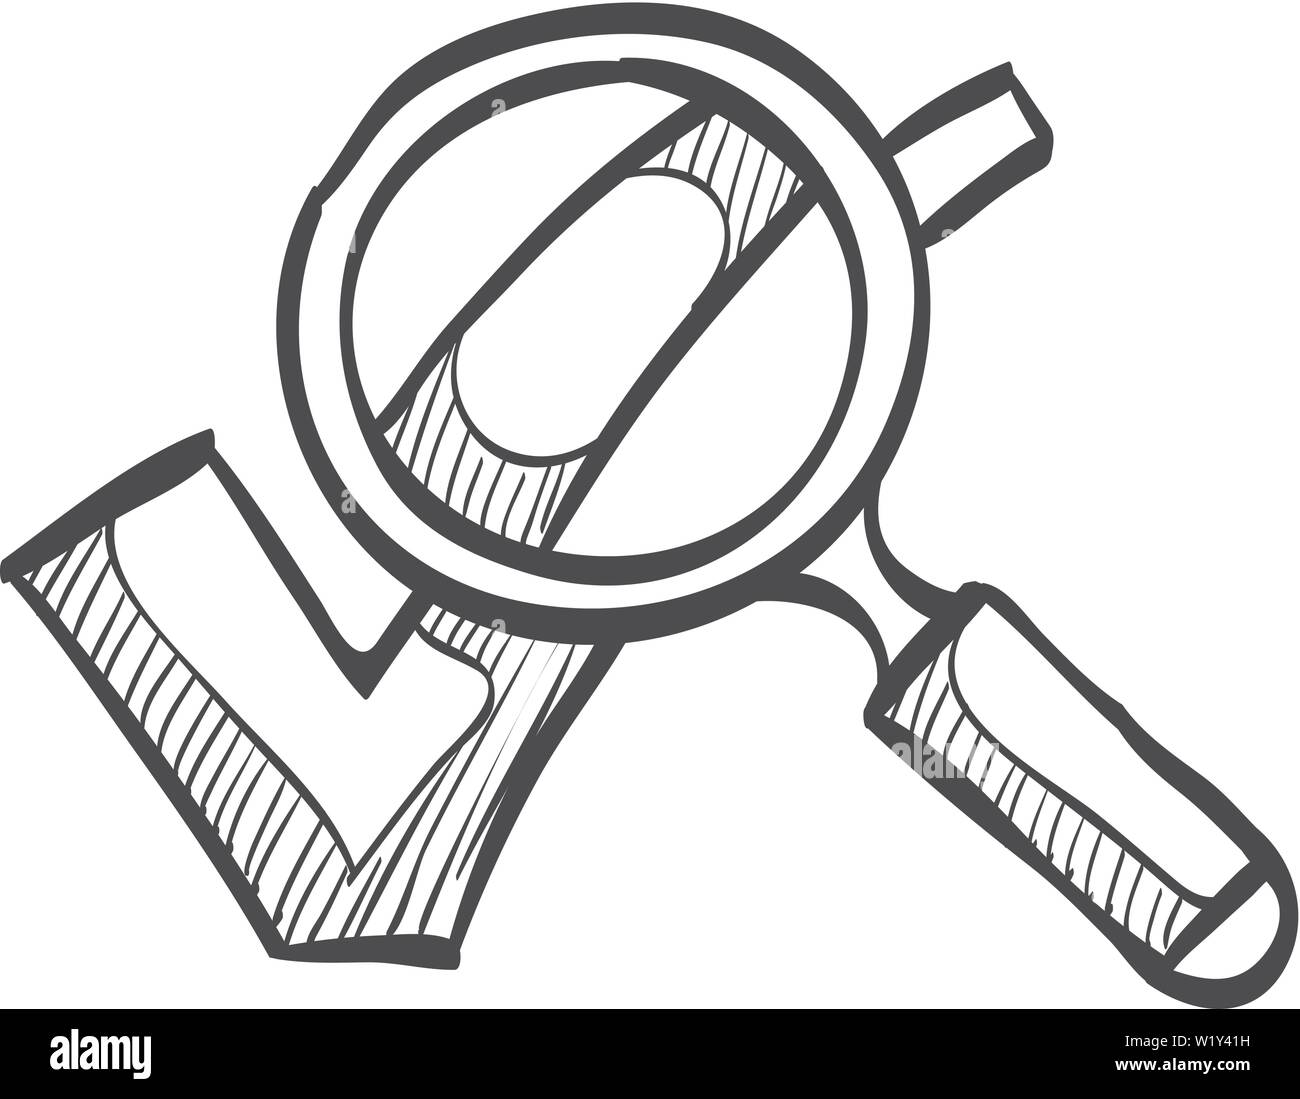 Magnifier check mark icon in doodle sketch lines. Zoom find locate approved decisions voting - Stock Image